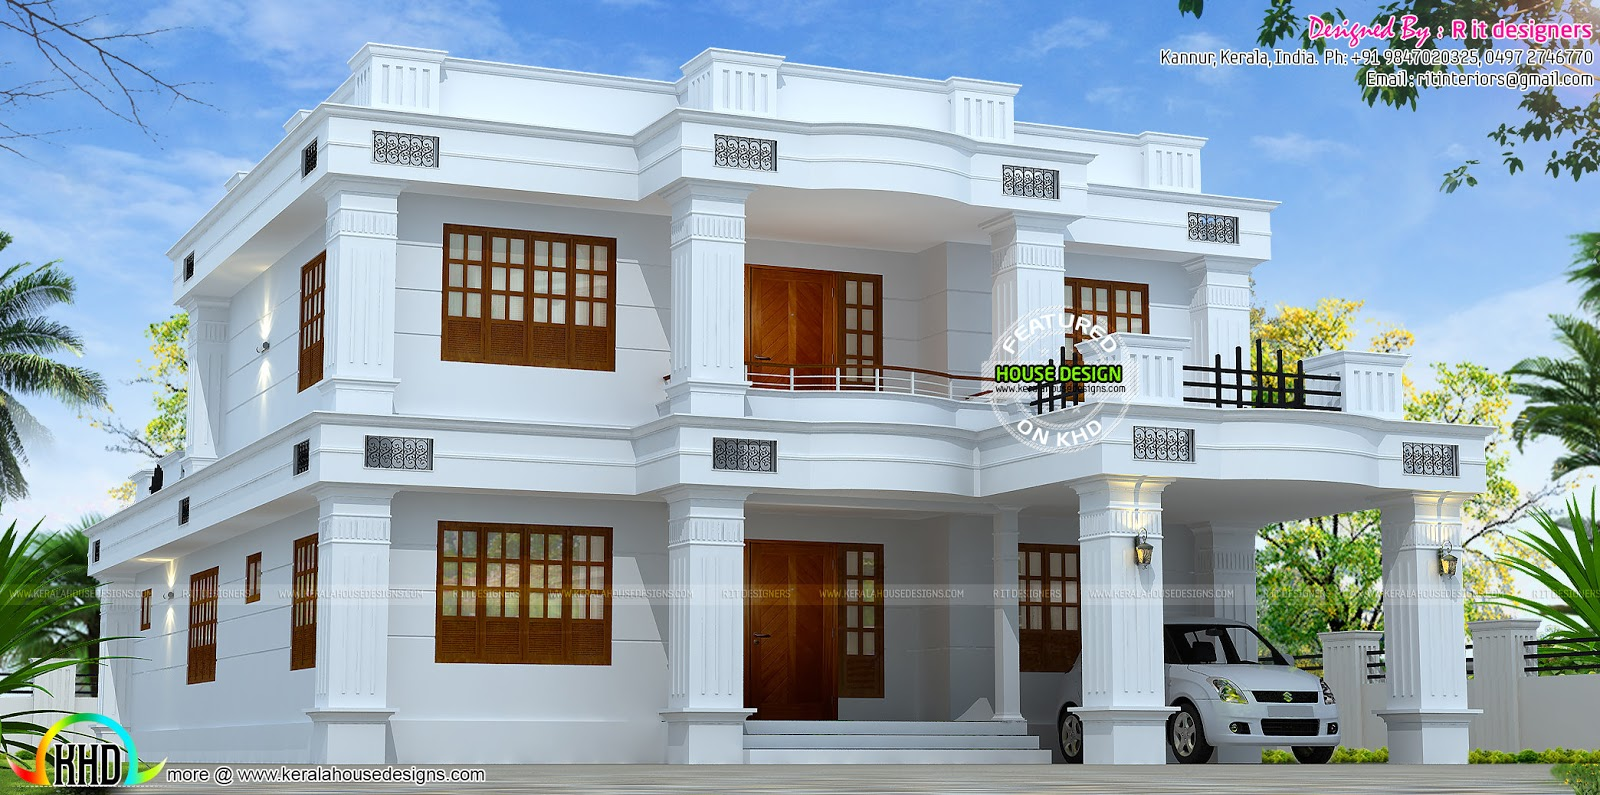 February 2016 kerala home design and floor plans - Design house ...